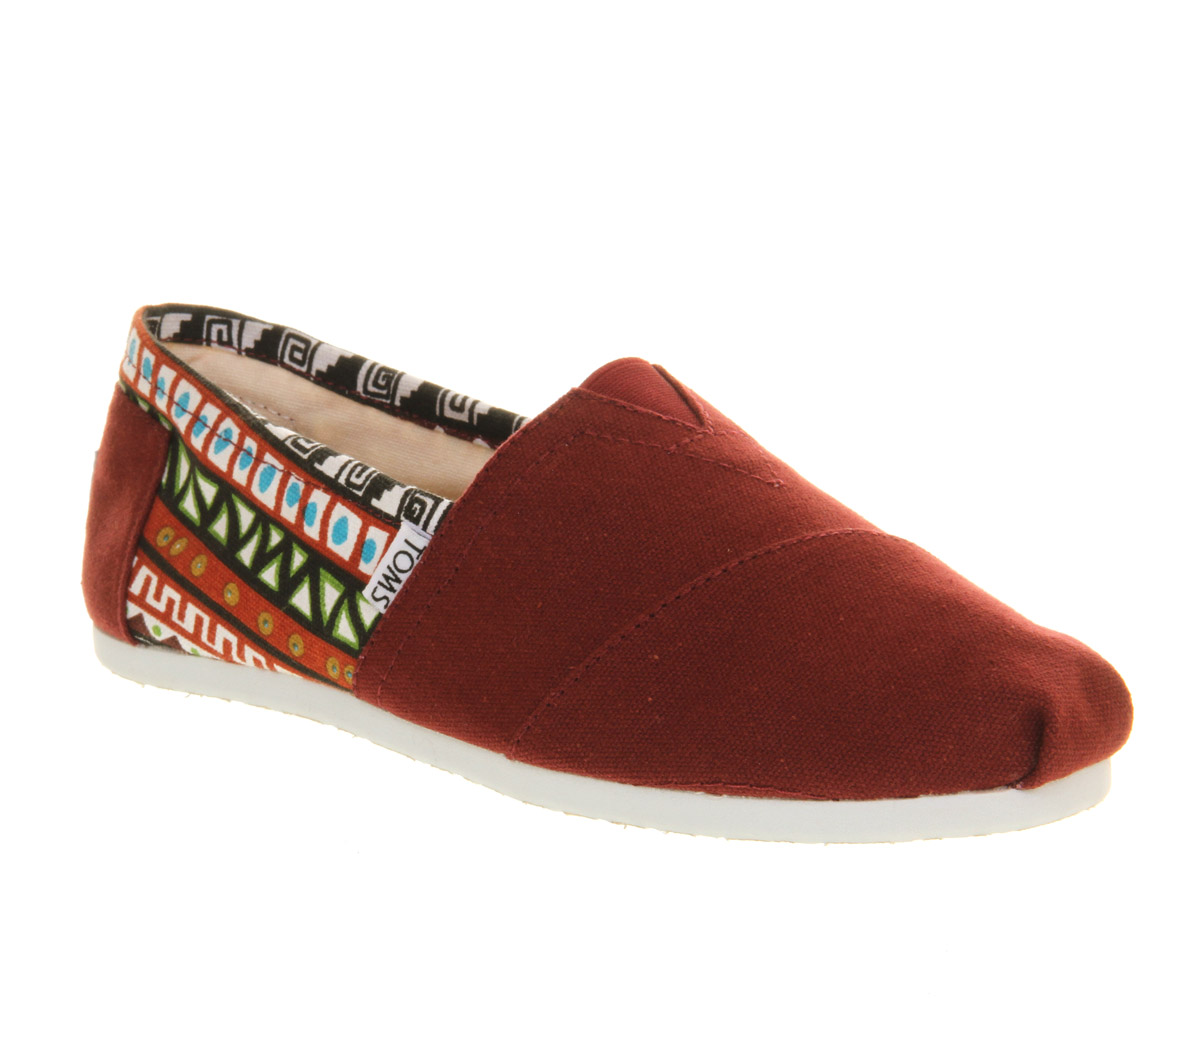 About TOMS Women's Exclusive Shoes. See our Limited Edition Women's Exclusives Collection, only available on lasourisglobe-trotteuse.tk and select TOMS retail stores. From our Classics slip on shoes to our sandals and platform wedges, our Limited Edition women's shoes include basic colors as well as bright and trendy prints and patterns.